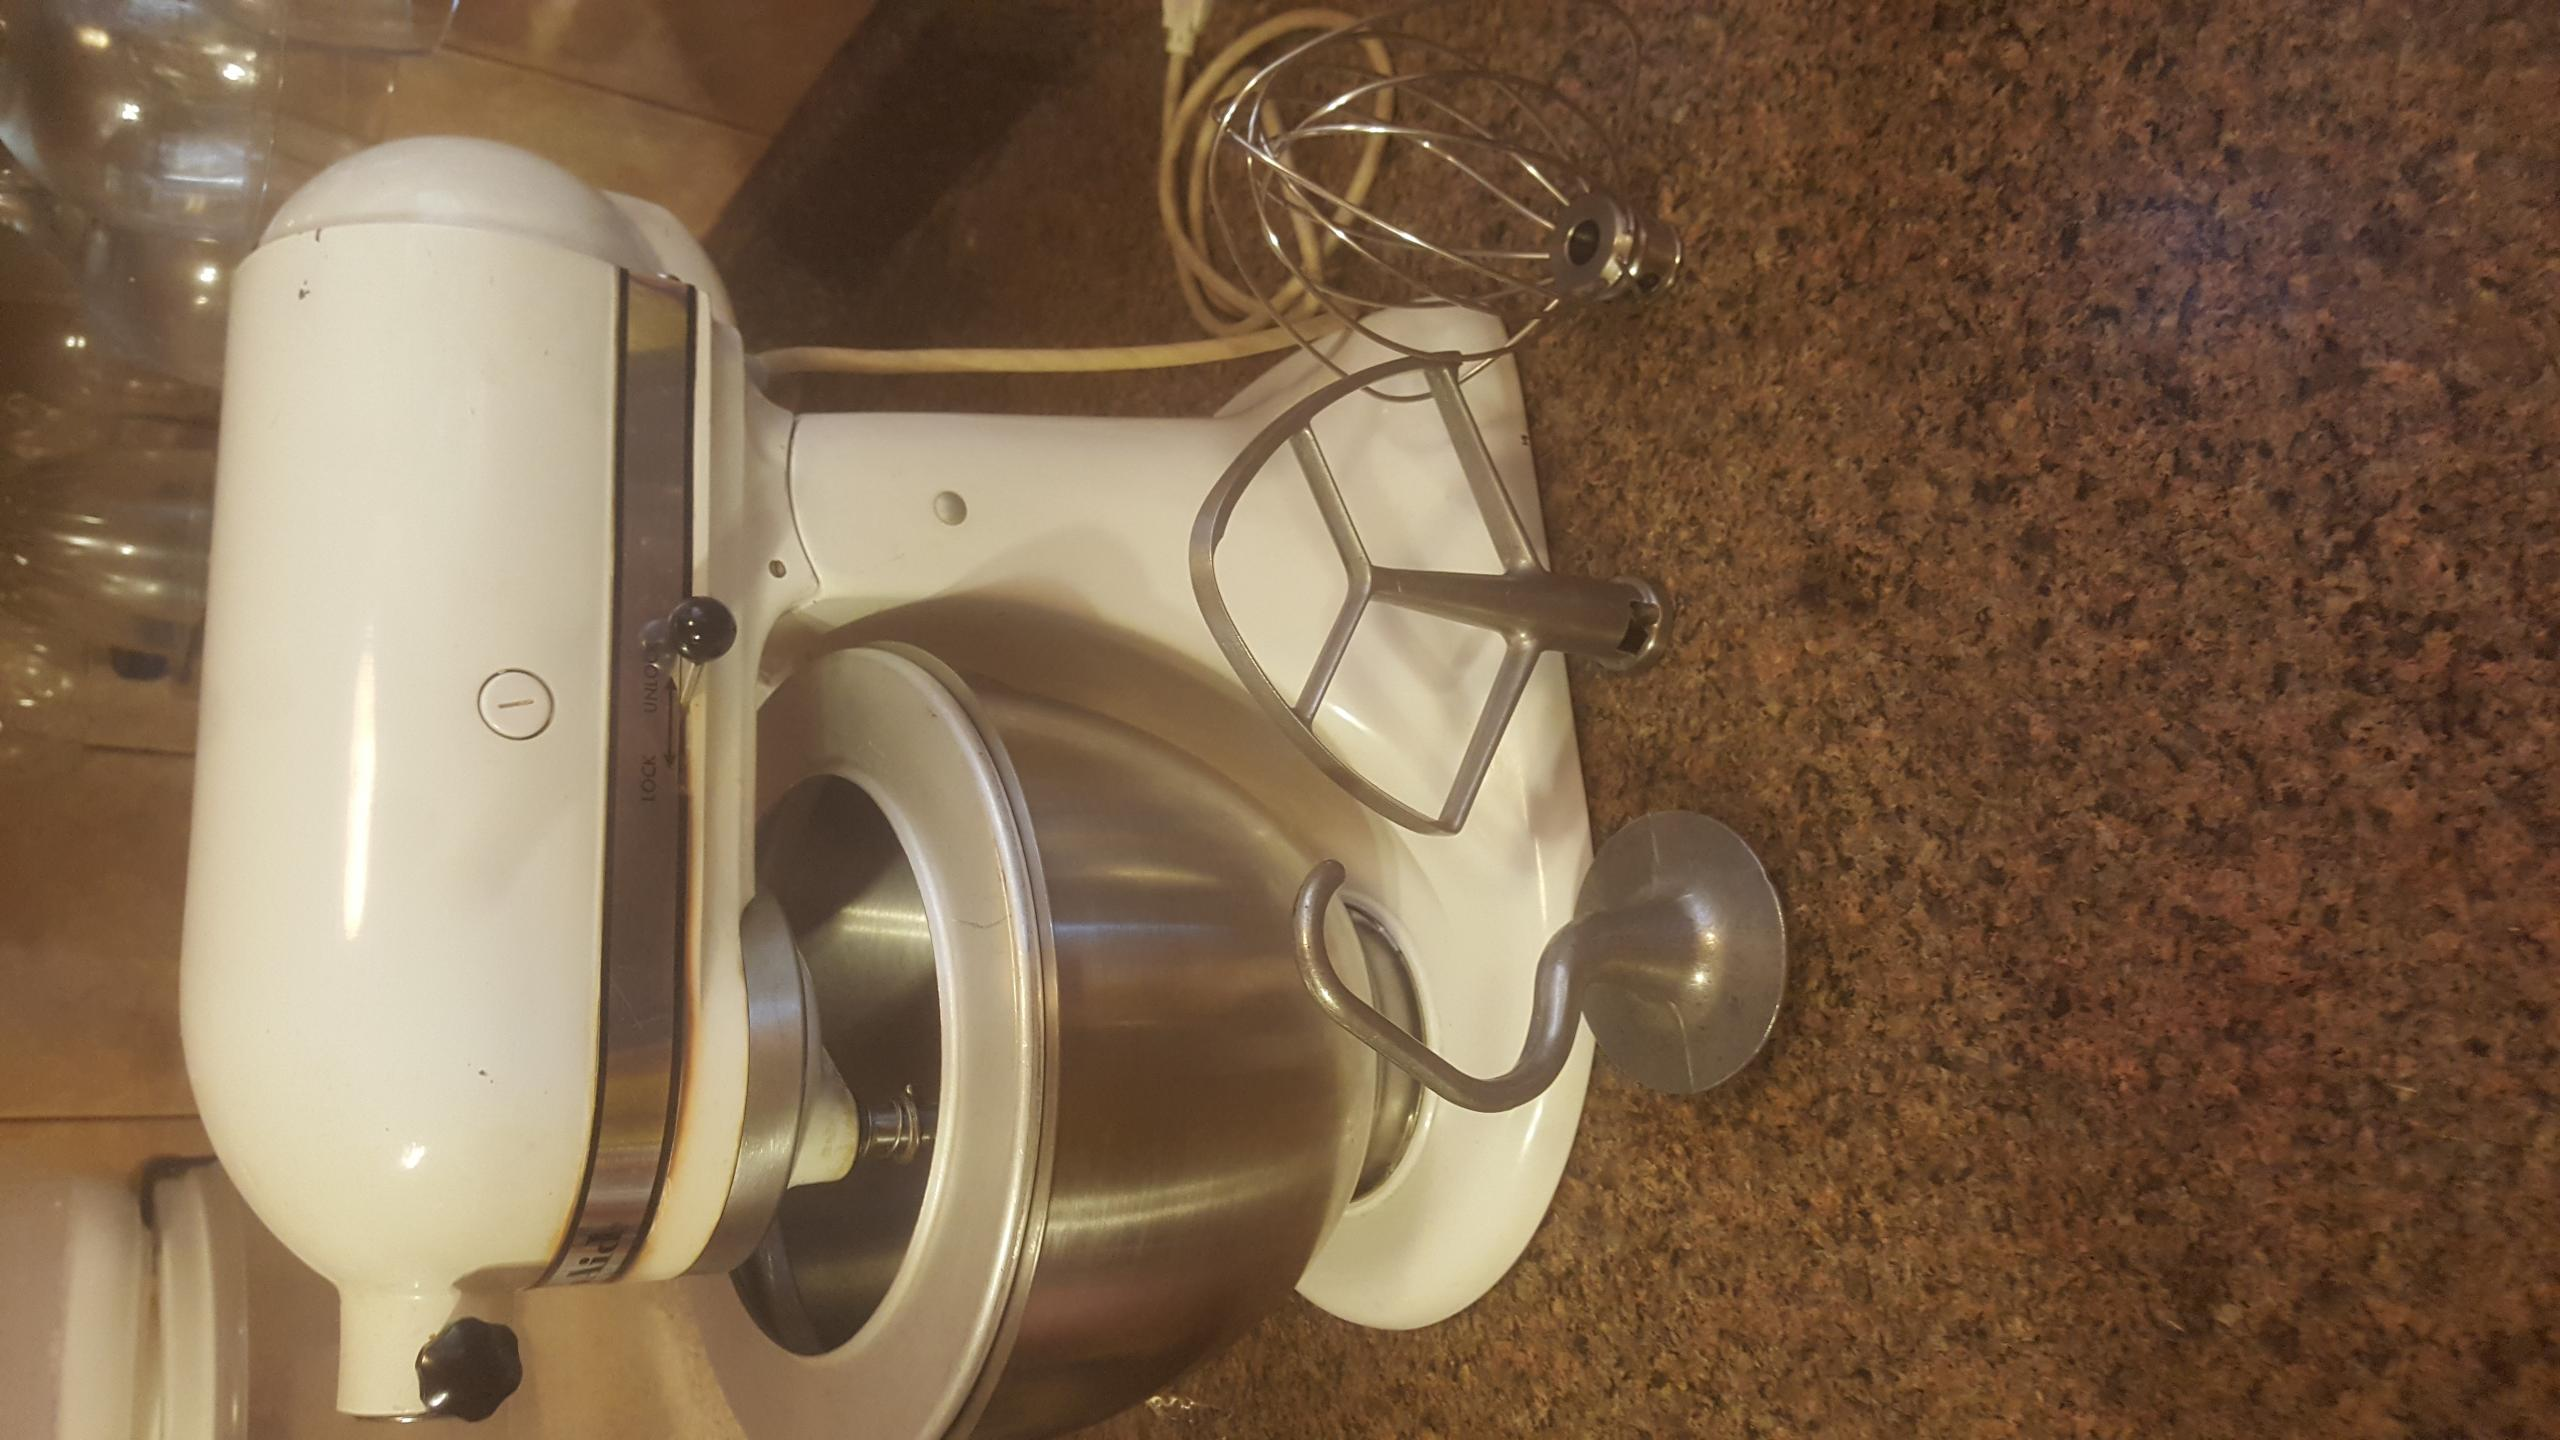 Help with Kitchenaid k45 mixer | The Fresh Loaf K Kitchenaid Mixer on kitchenaid k45 attachments, kitchenaid model k45, kitchenaid k45 repair, kitchenaid bowl k45, kitchenaid k45ss bowl, kitchenaid k45 classic,